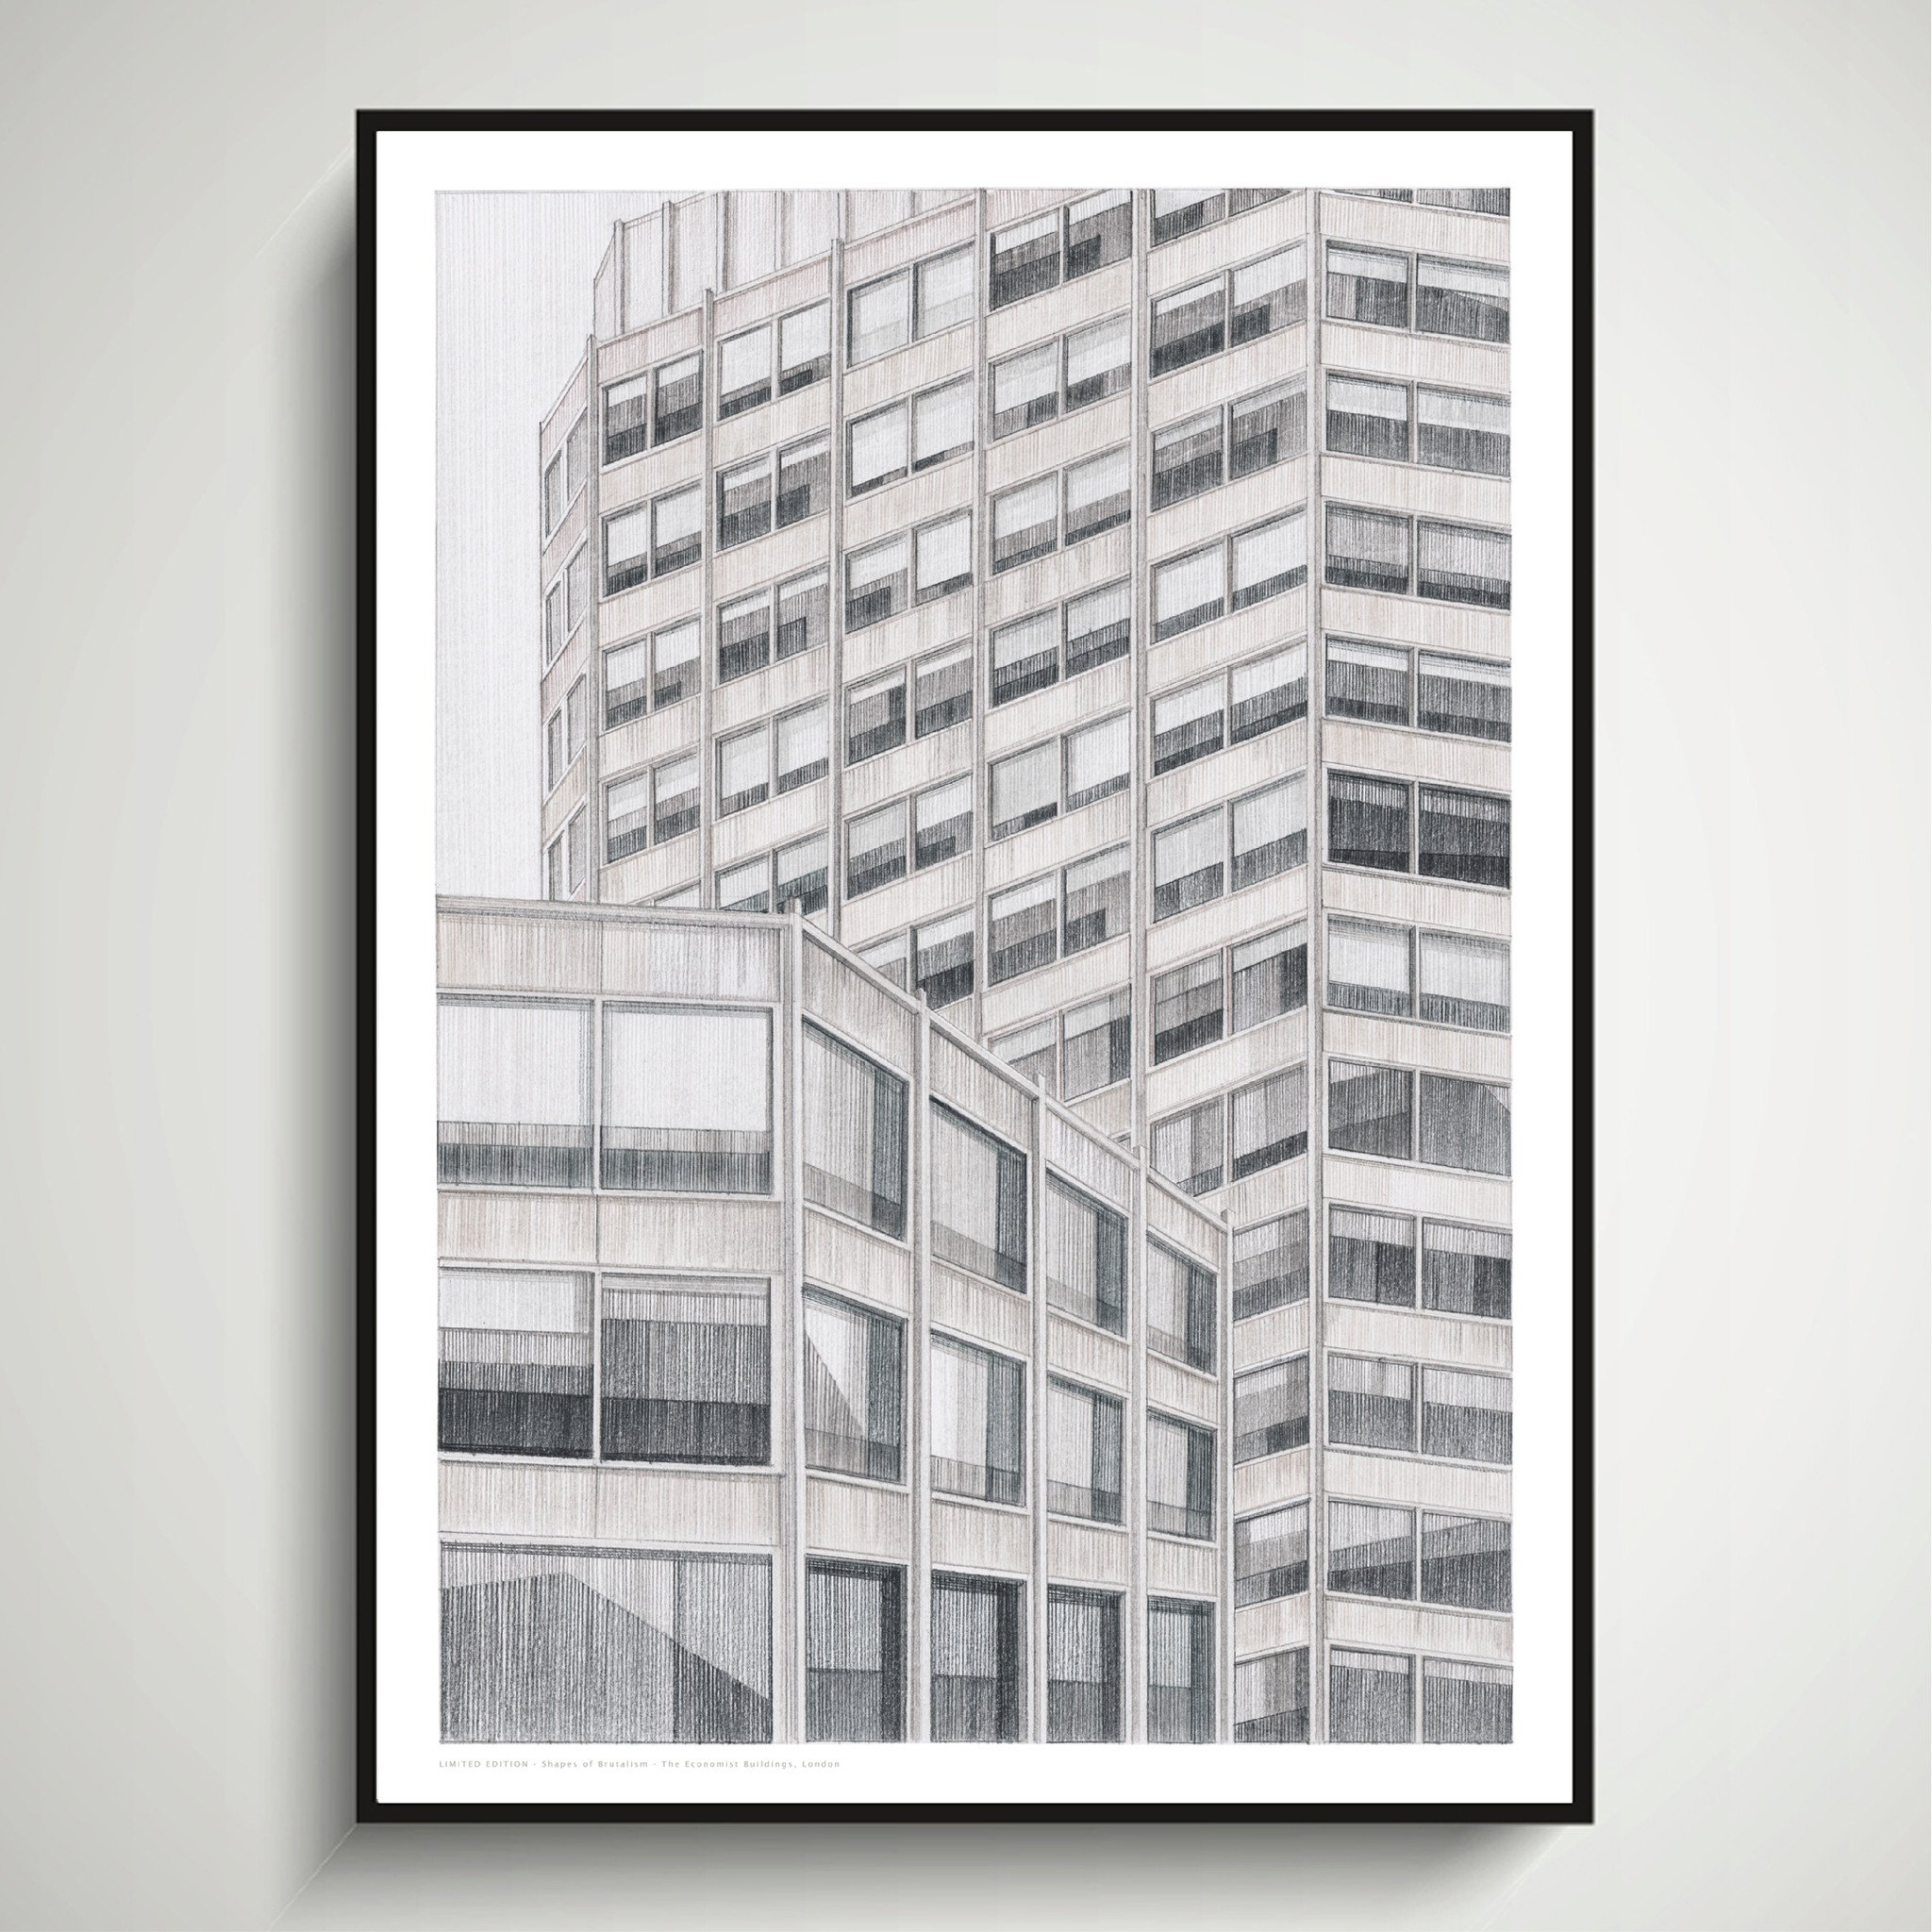 Oscar Francis, Shapes of Brutalism Economist Buildings, London, A2 Limited Edition of Hand Drawing